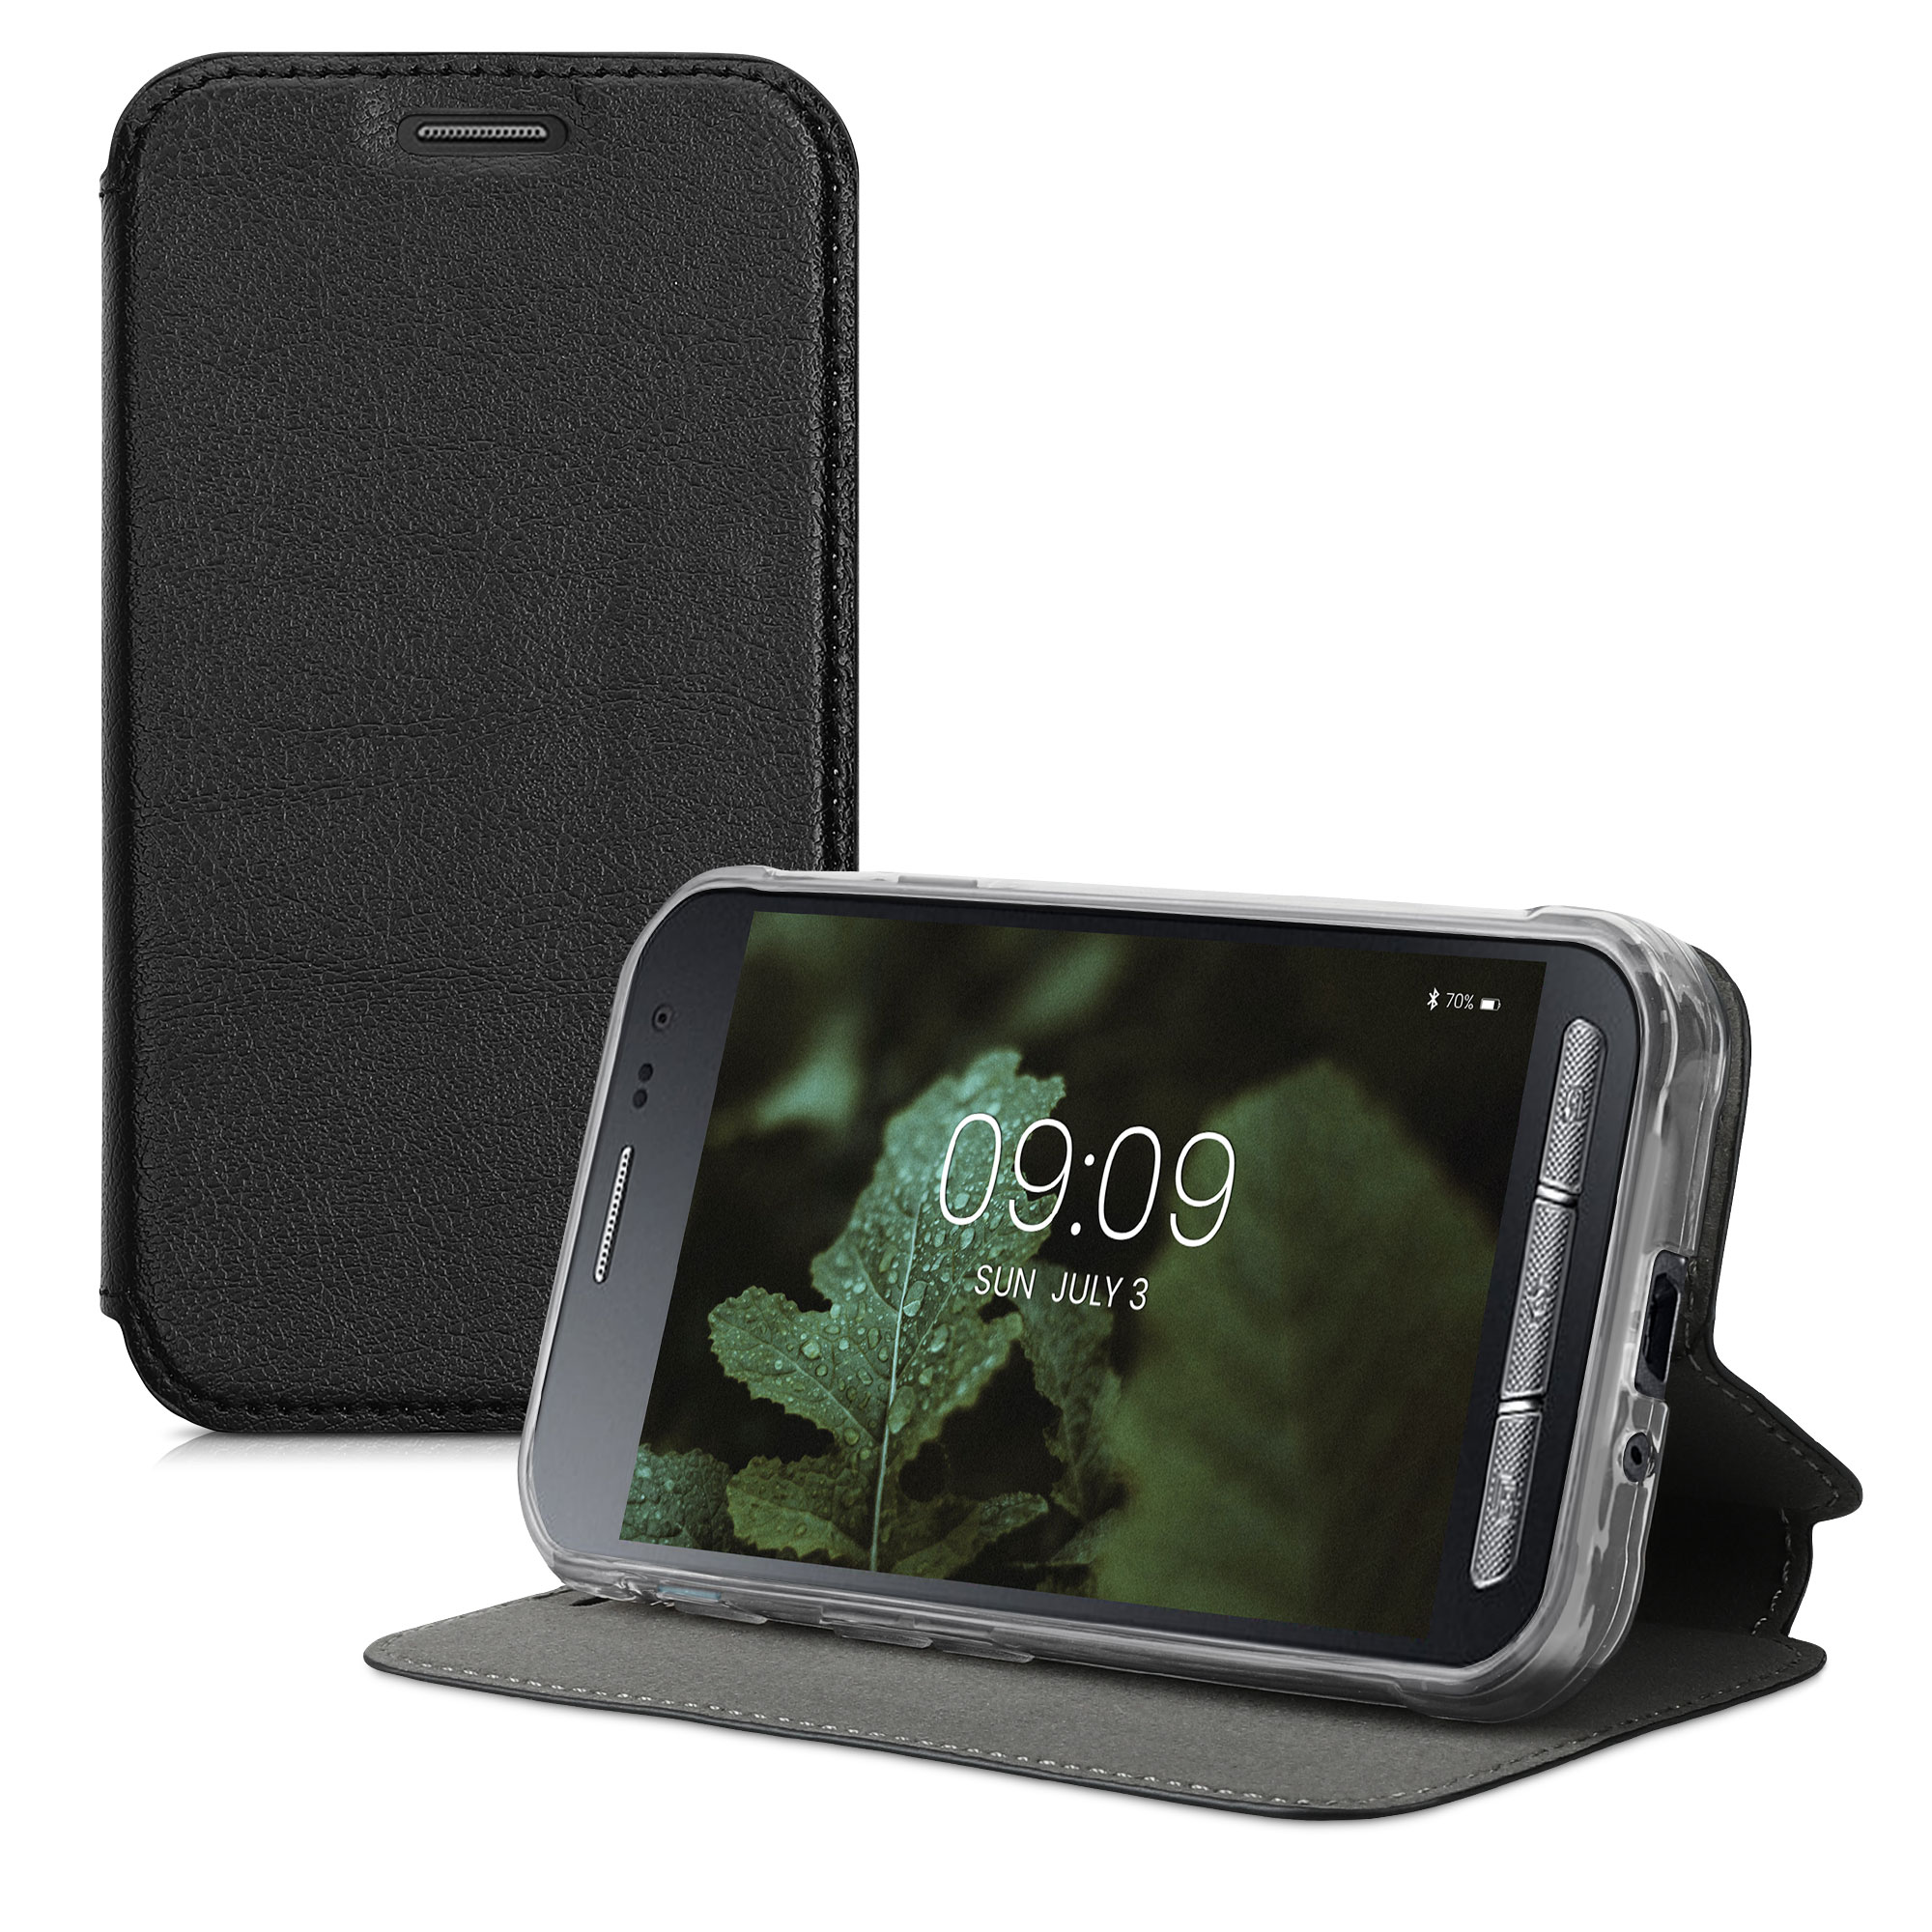 Tui de protection pour samsung galaxy xcover 3 noir for Housse xcover 4